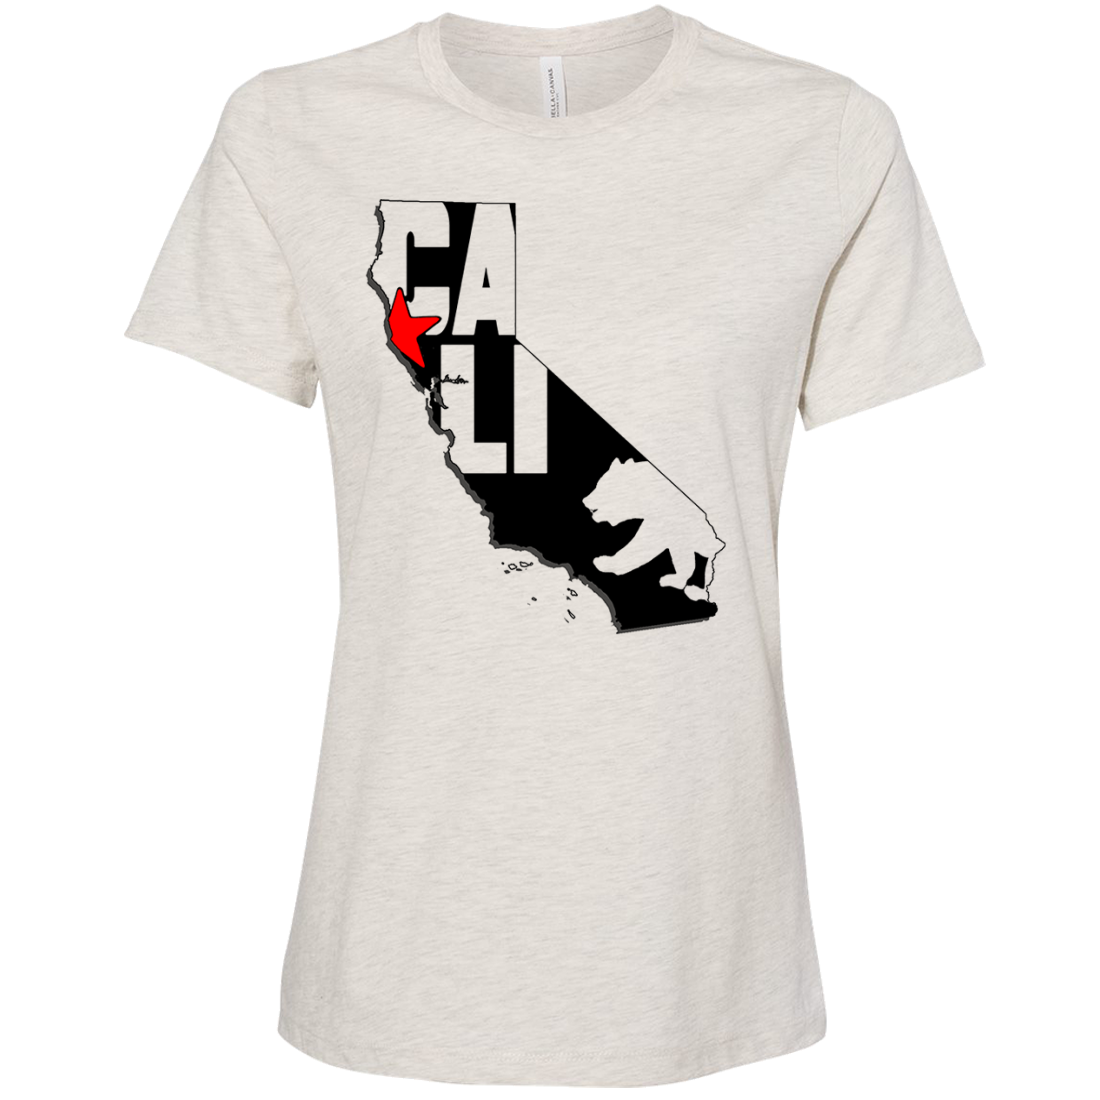 Cali Map Silhouette Outline Women's Relaxed Jersey Tee